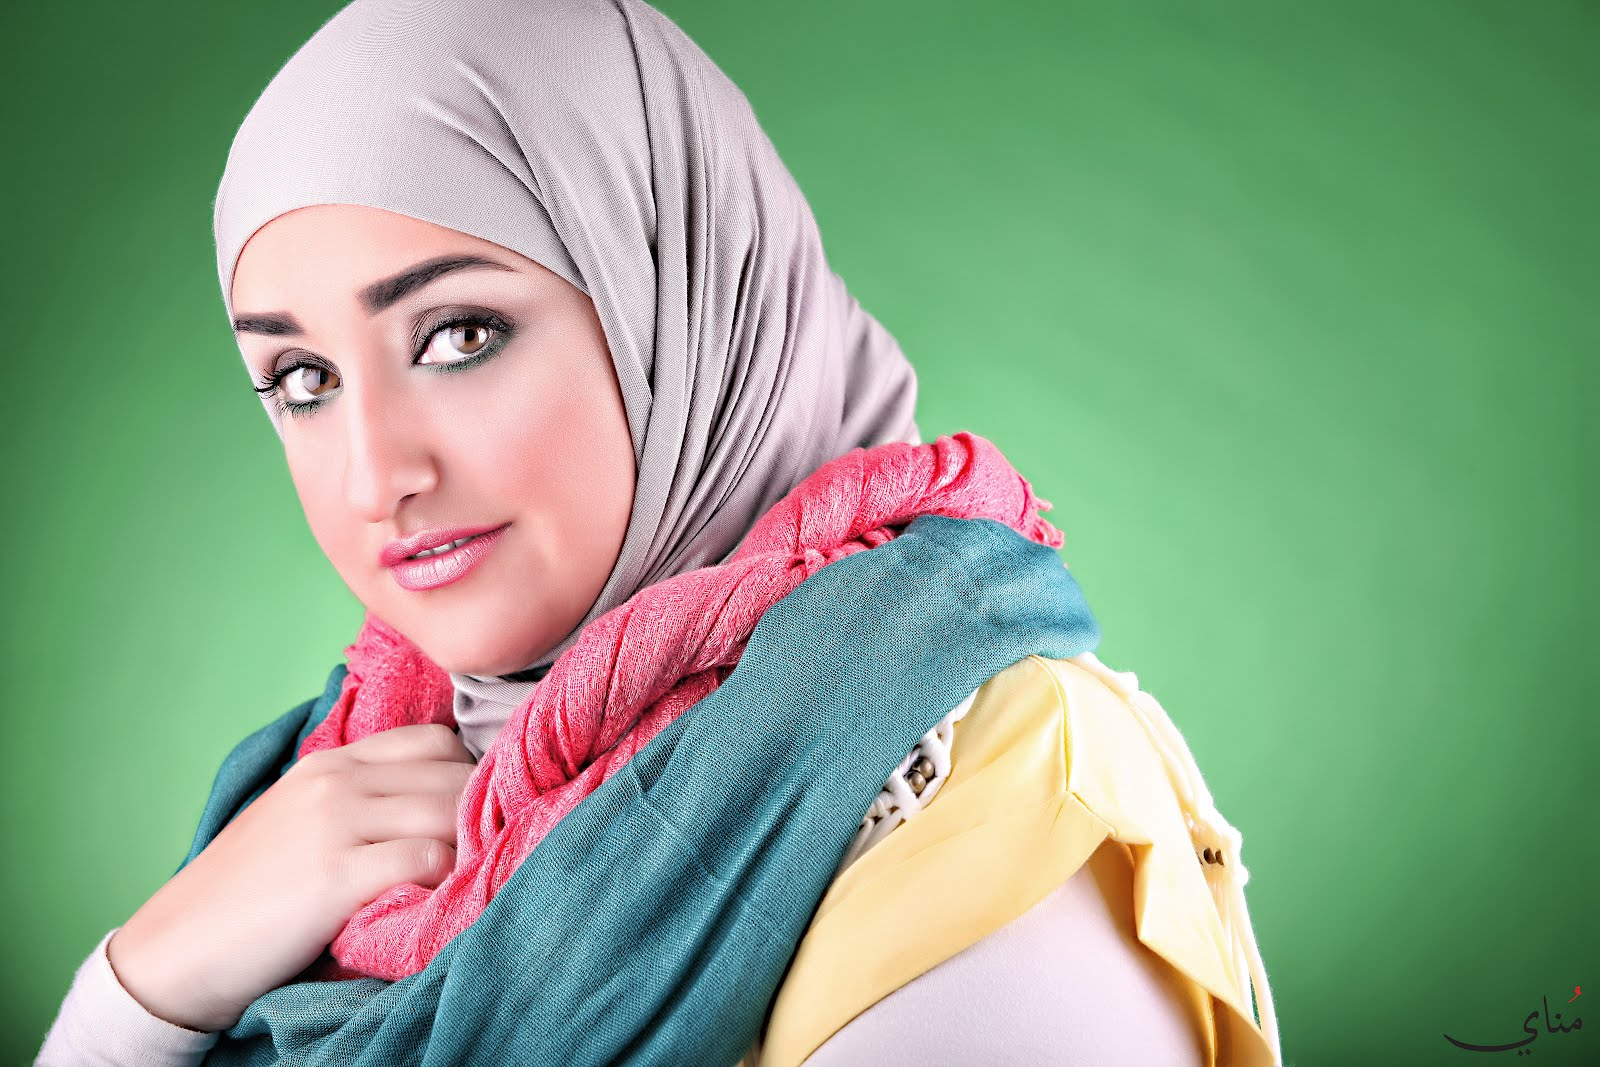 armada muslim girl personals Muslim matrimonials women dating arab dating in the arab world is a fascinating topic to begin with, arab dating is very different conceptually from the western world's views of dating.